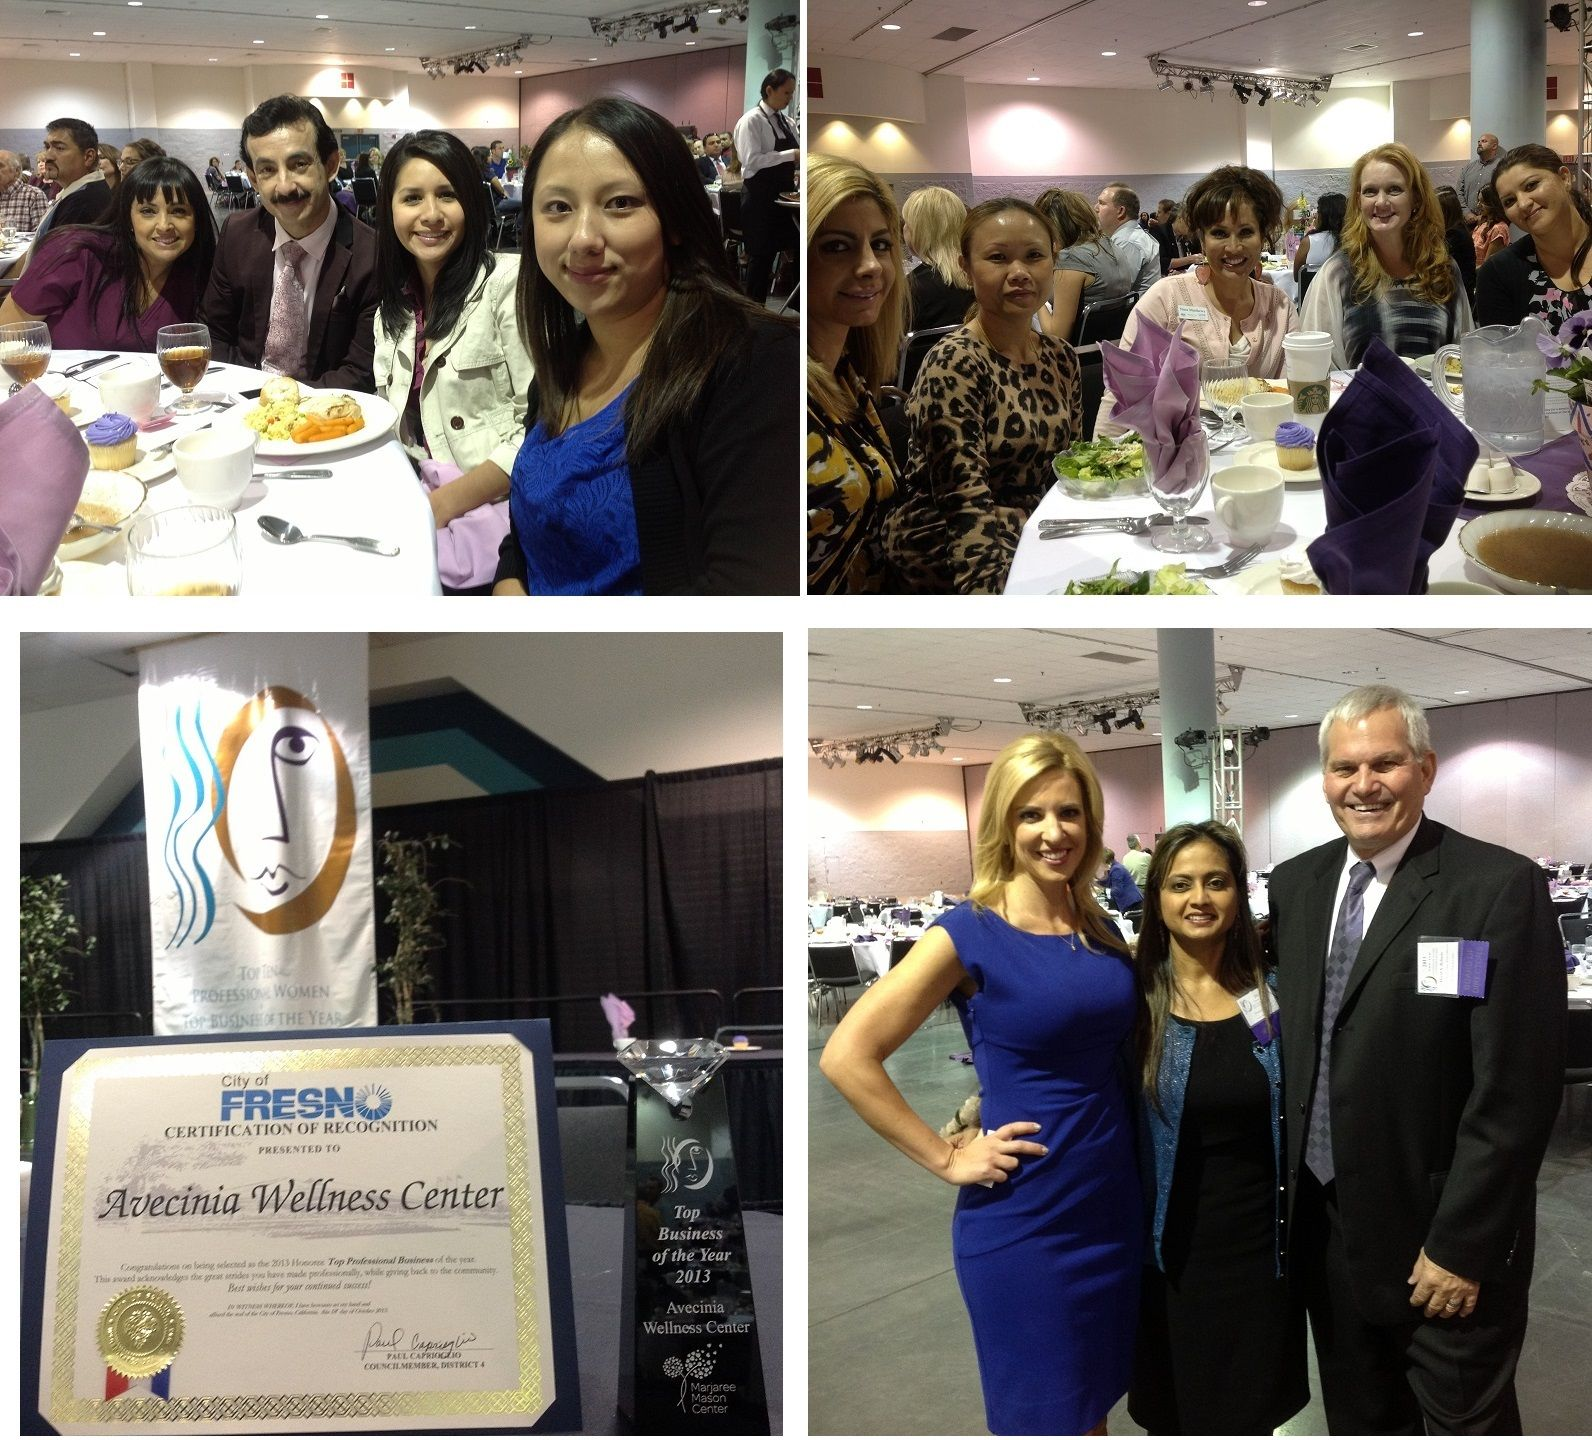 avecinia was recently honored by the Marjaree Mason Center as the 2013 Top Business of the Year for empowering women in the workplace and in the community!  We were honored and humbled to be recognized and look forward to continue growing as a business, innovative healthcare provider and community supporter! Learn more at www.avecinia.com and support the Marjaree Mason Center by visiting www.mmcenter.org